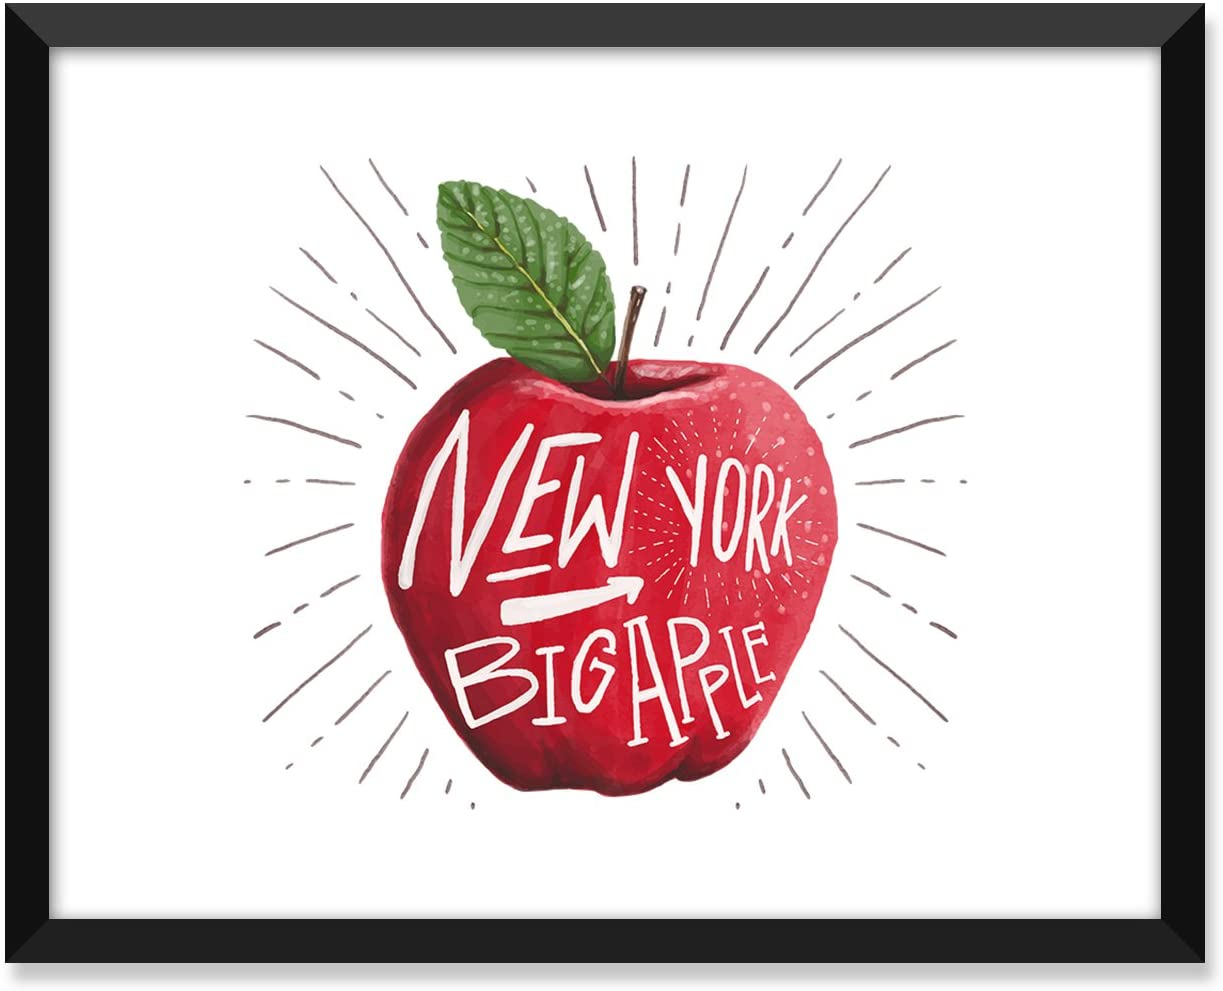 Serif Design Studios Big Apple New York Watercolor, Inspiration Quote, Funny, Adult, Minimalist Poster, Home Decor, College Dorm Room Decorations, Wall Art